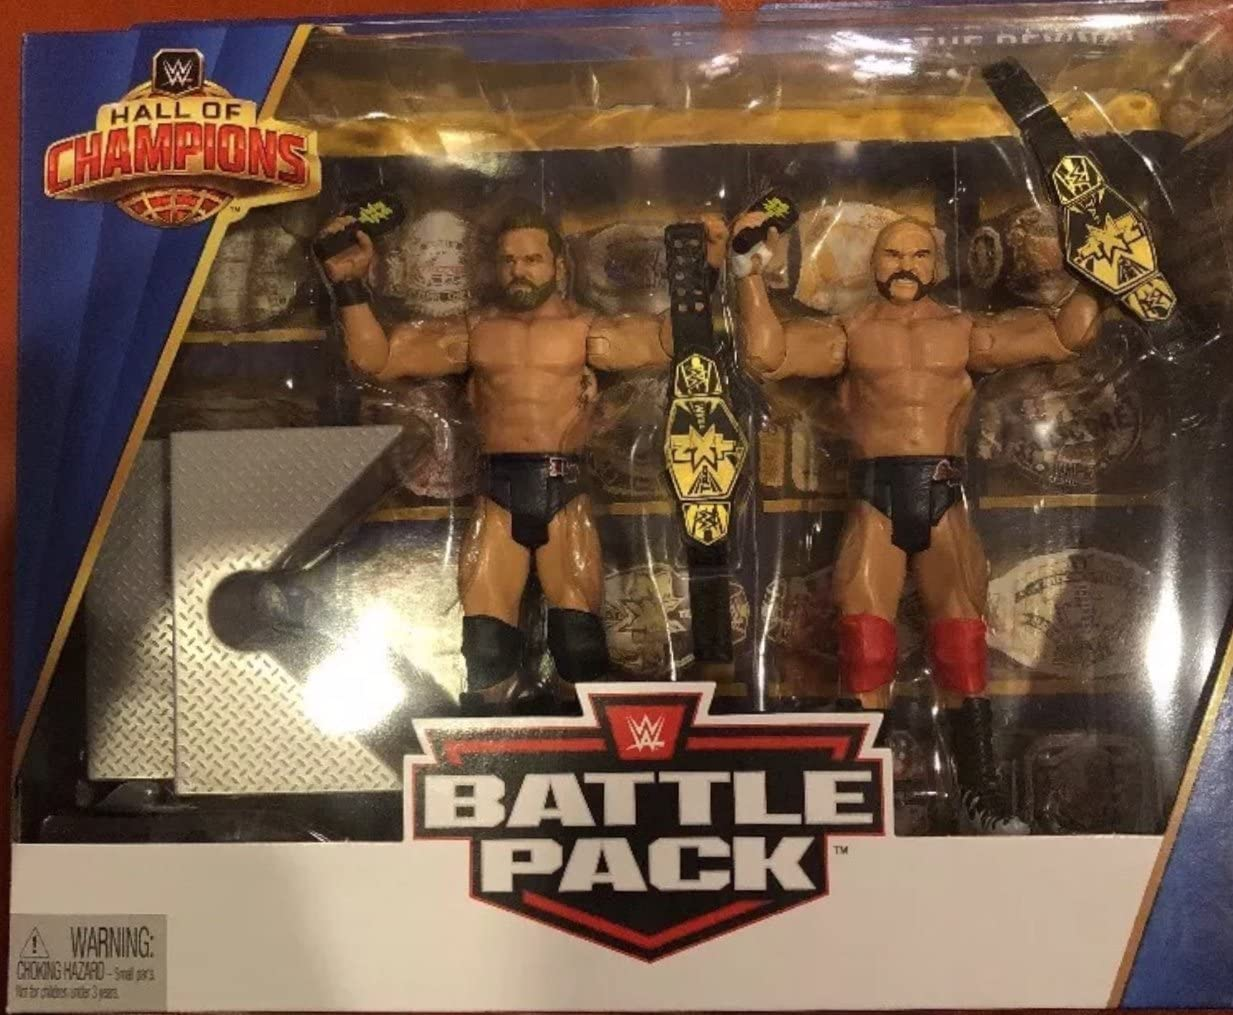 WWE Wrestling Hall of Champions The Revival Figures 2-Pack Dash Wilder /& Dawson